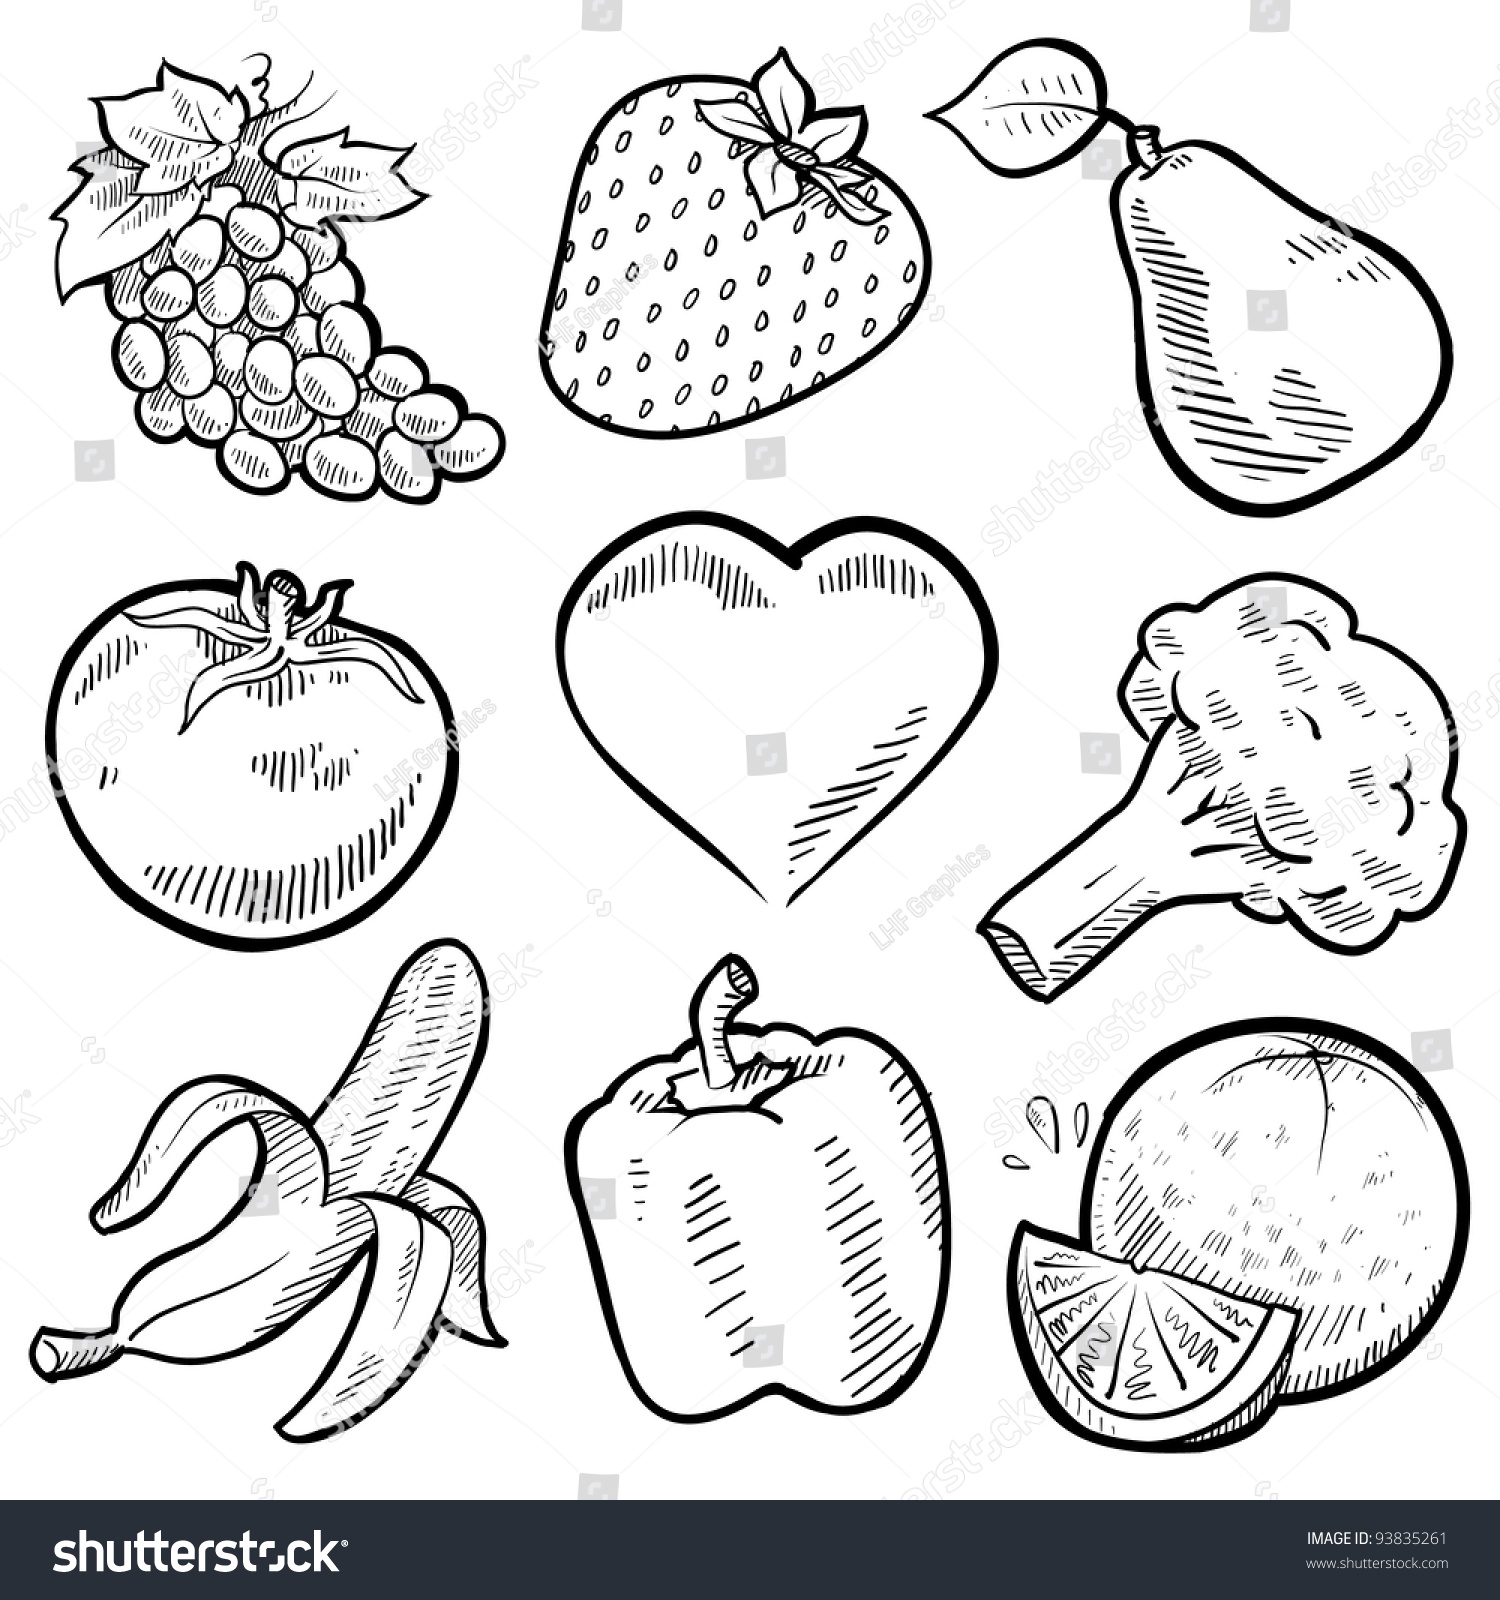 doodle style healthy fruits vegetables sketch stock vector